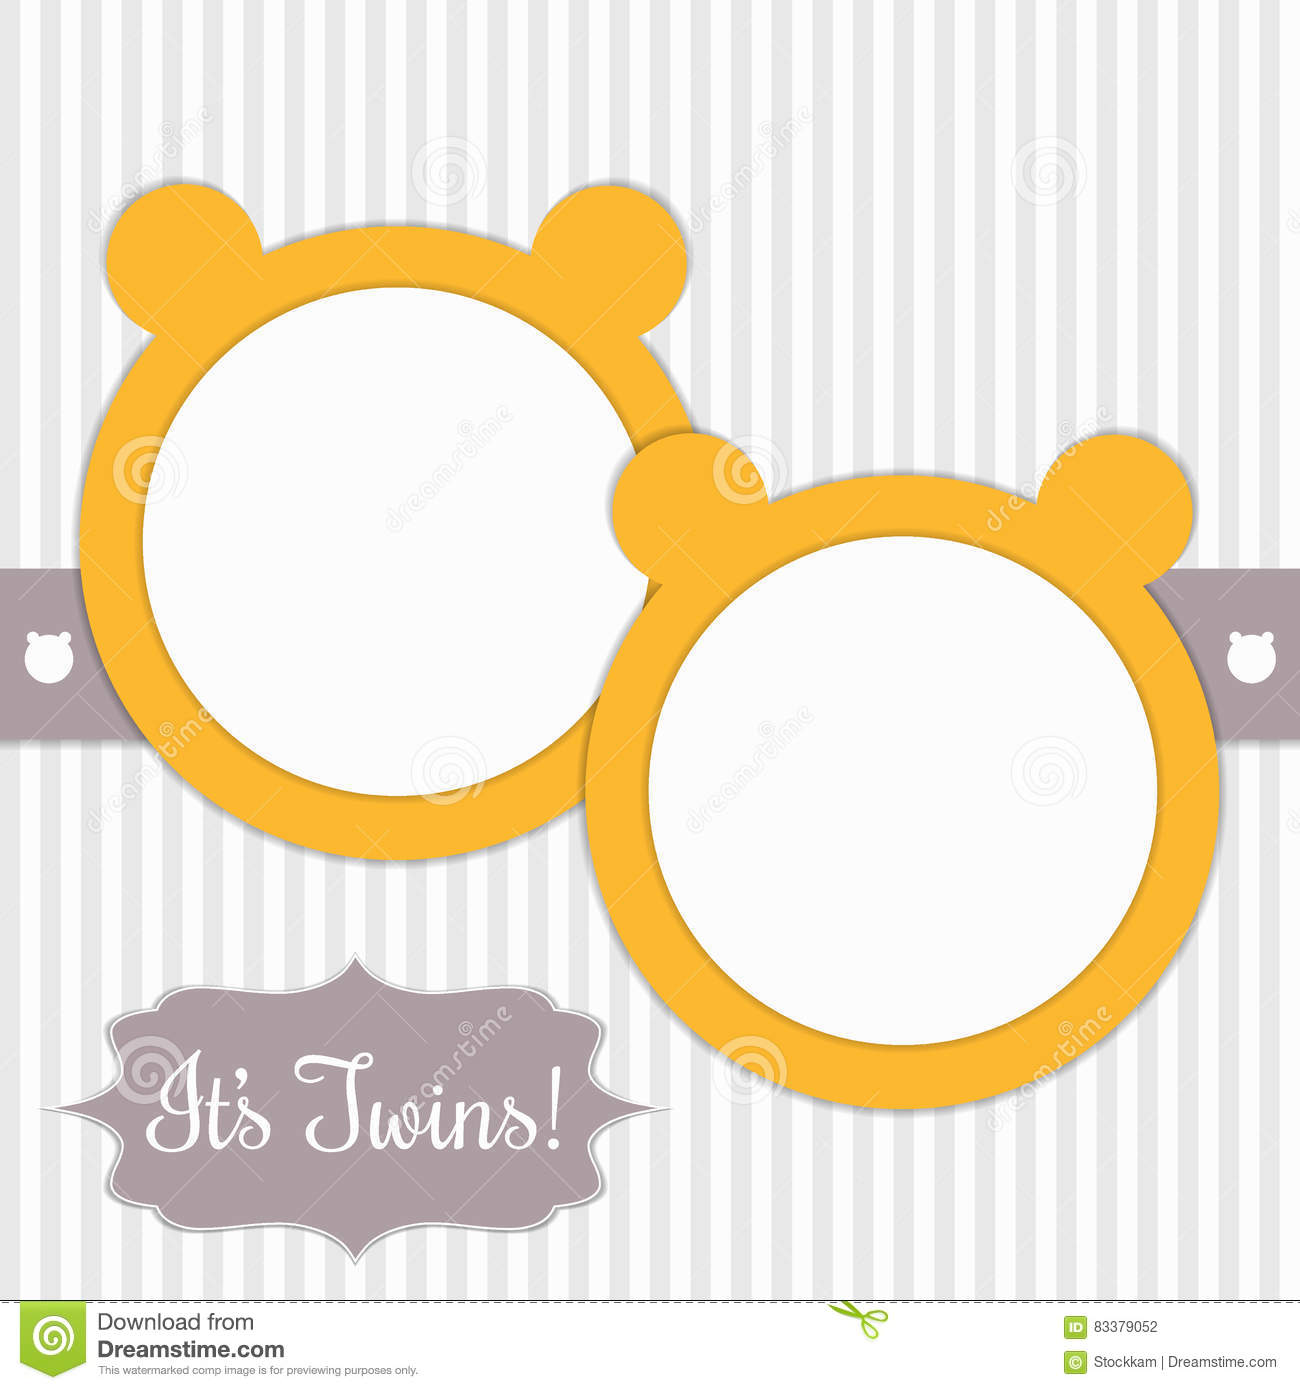 Baby Shower Card With Sunny Yellow Bears And Stripes. It`s Twins.